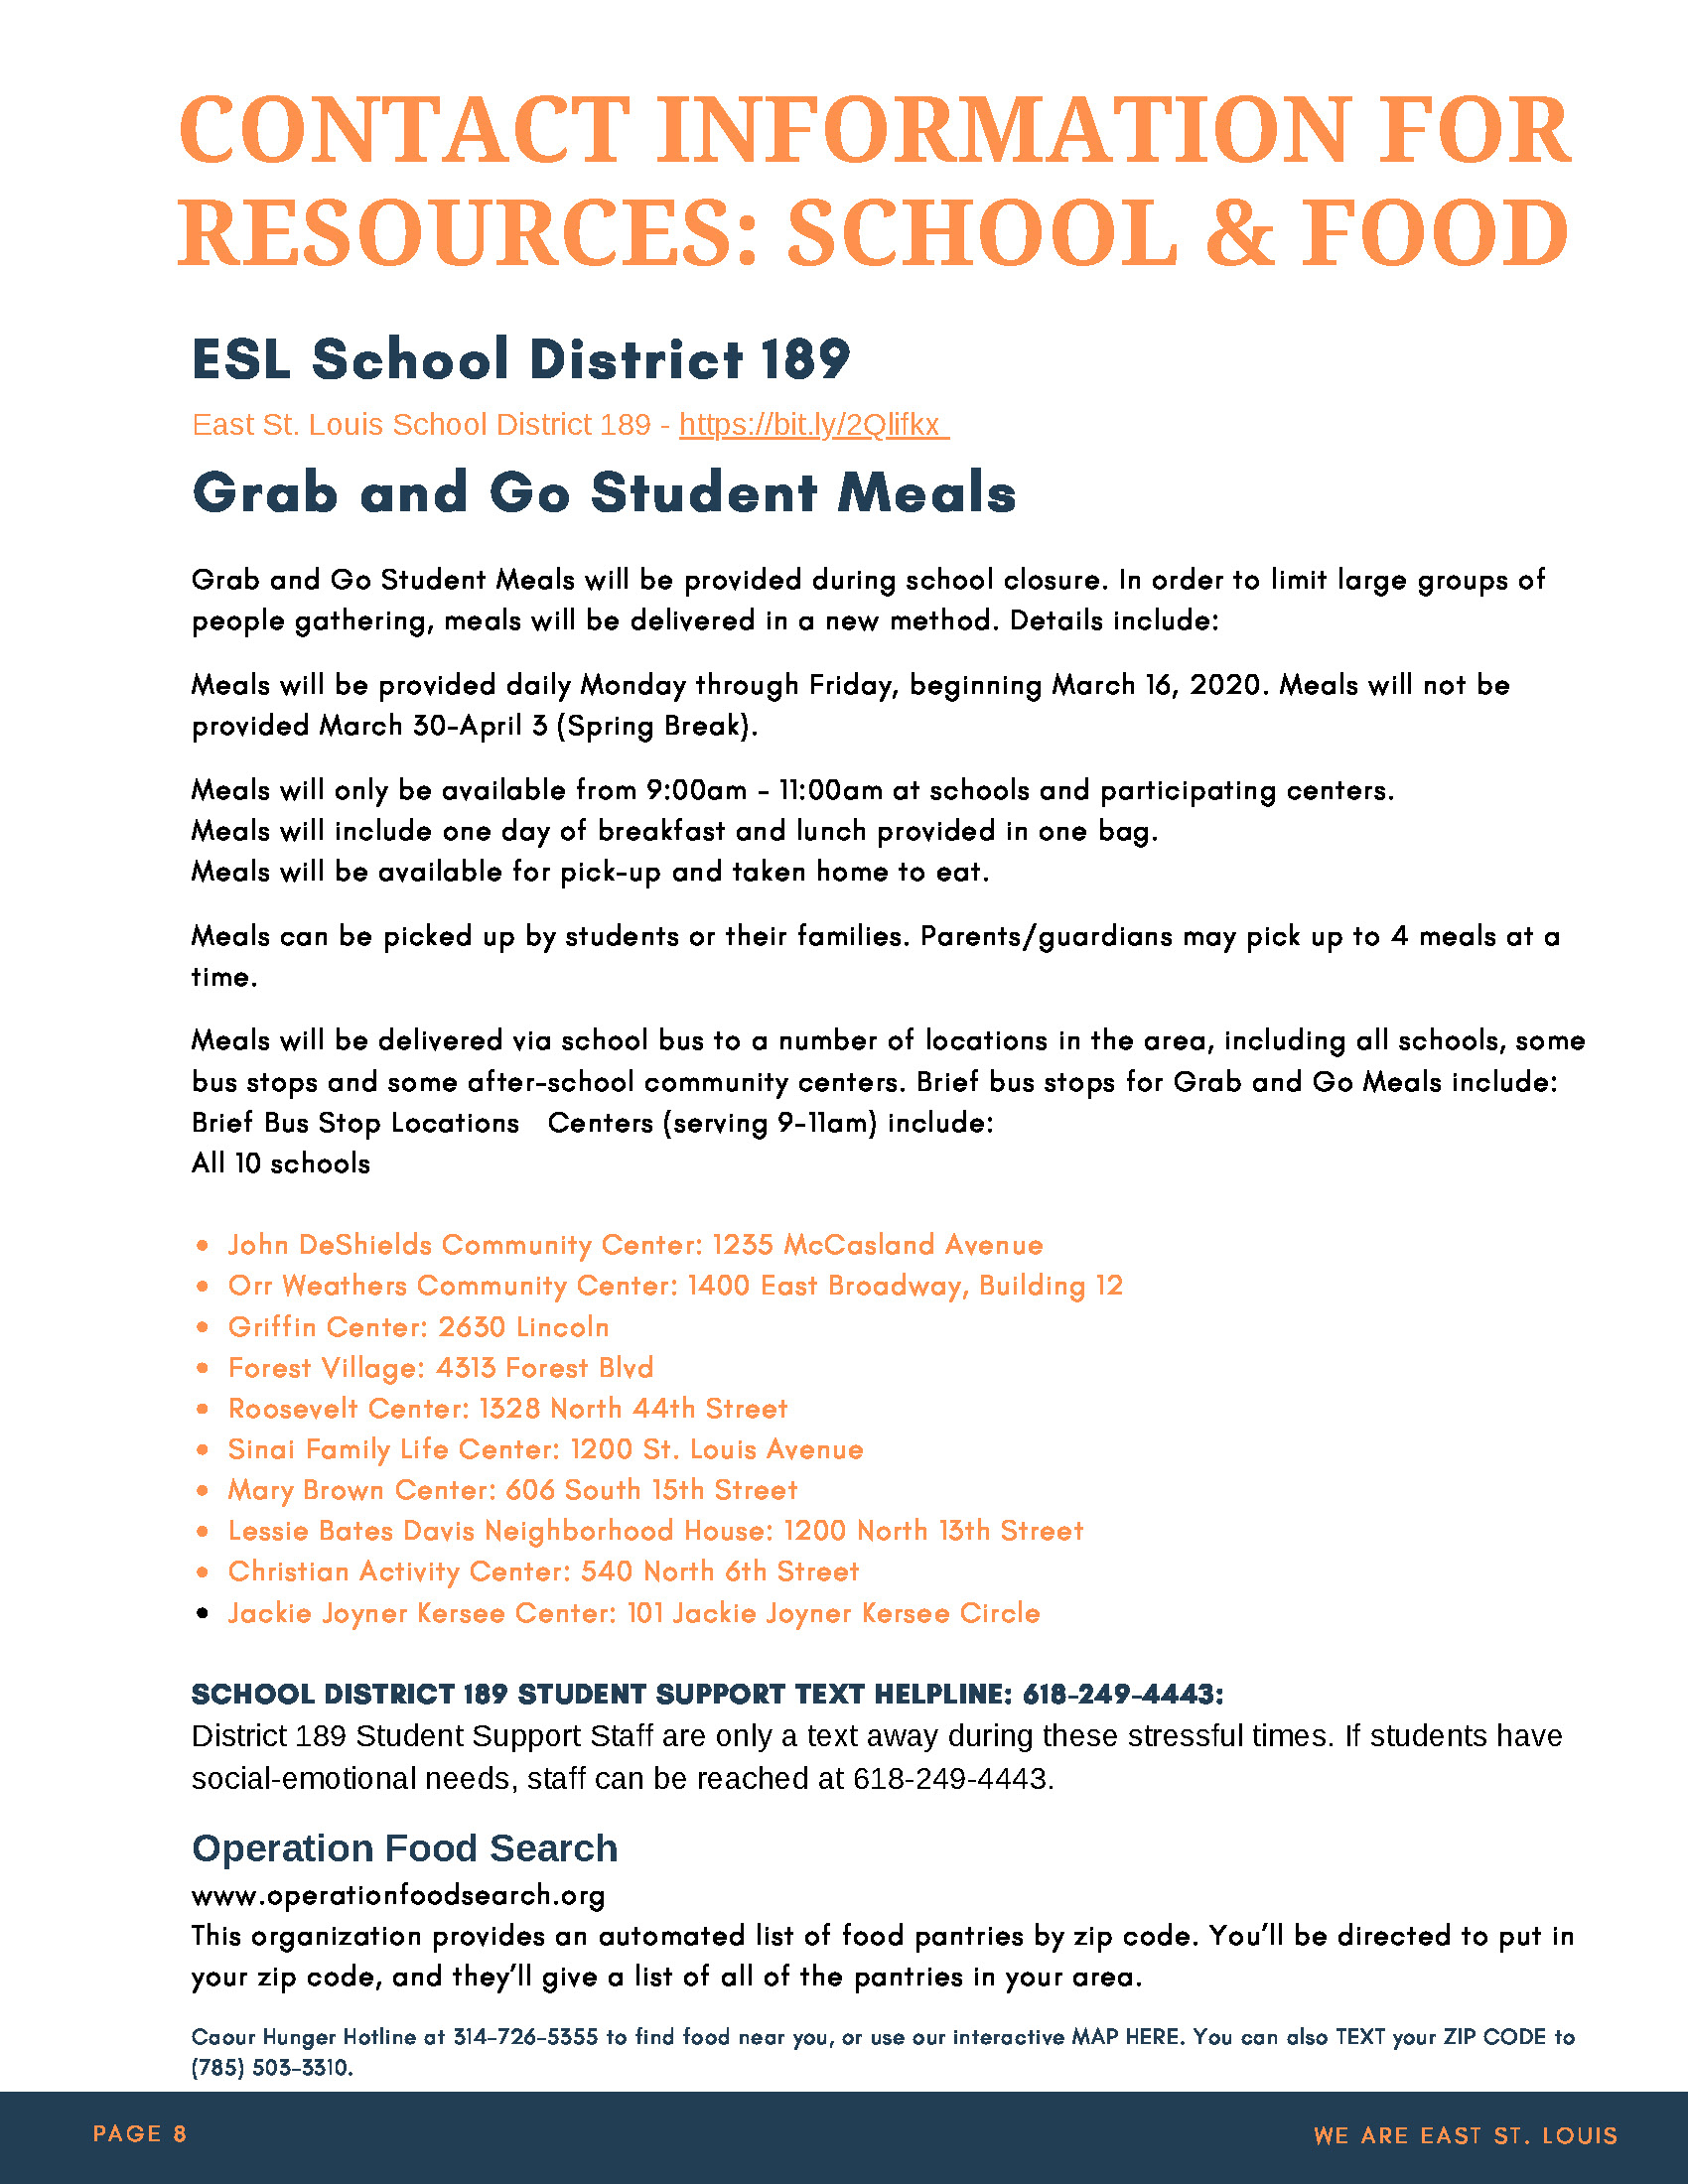 EAST ST LOUIS - COVID-19 RESOURCE GUIDE Update_Page_08